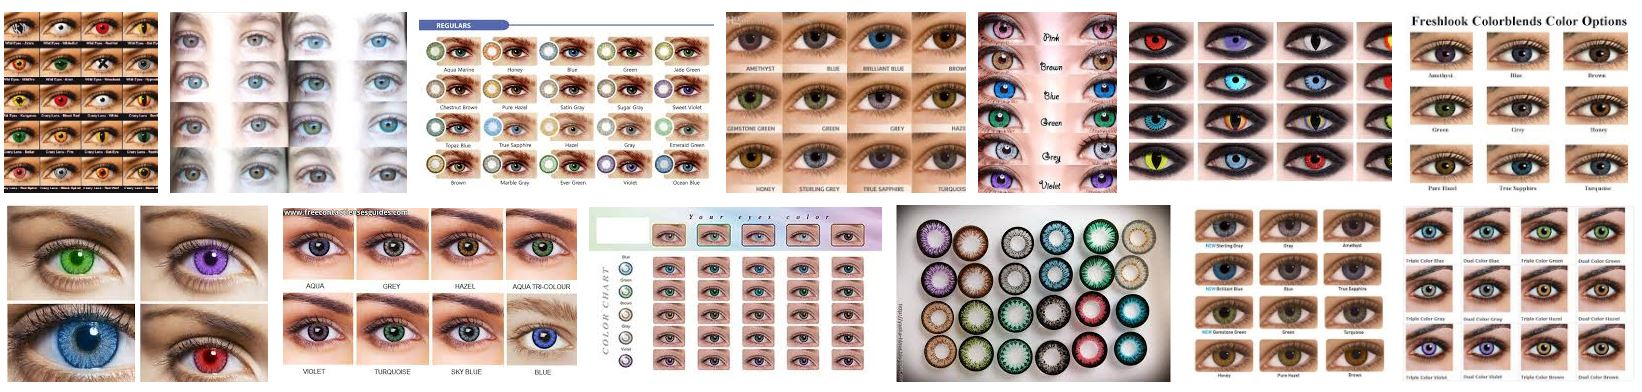 Colored Contact Lenses